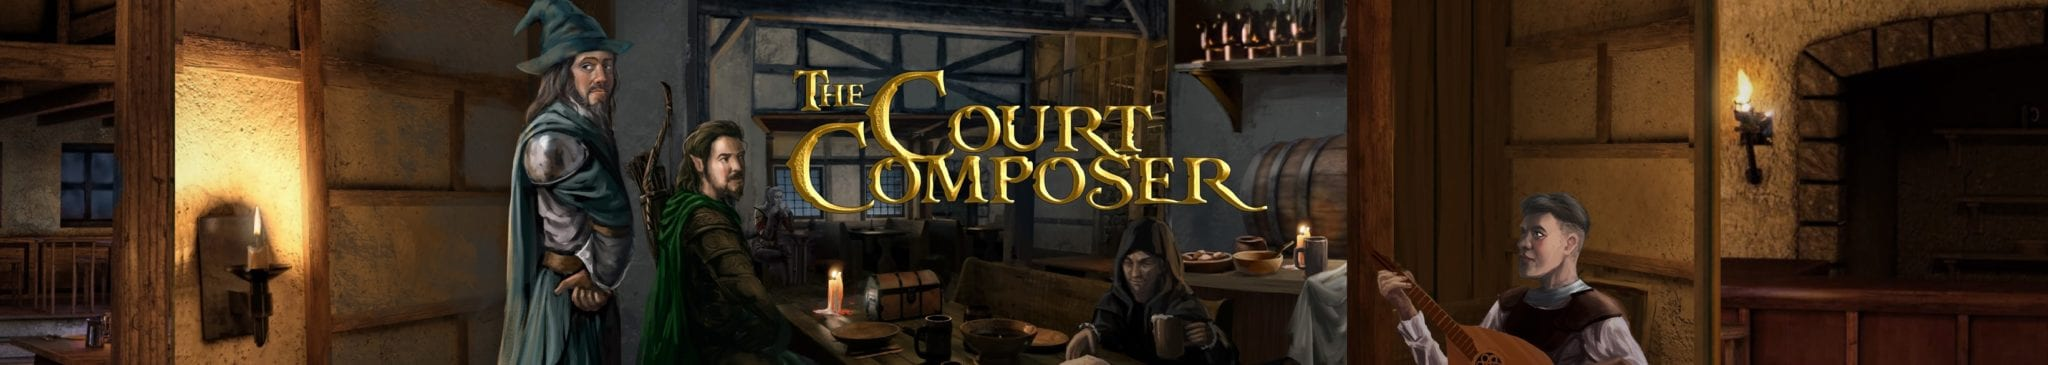 The Court Composer